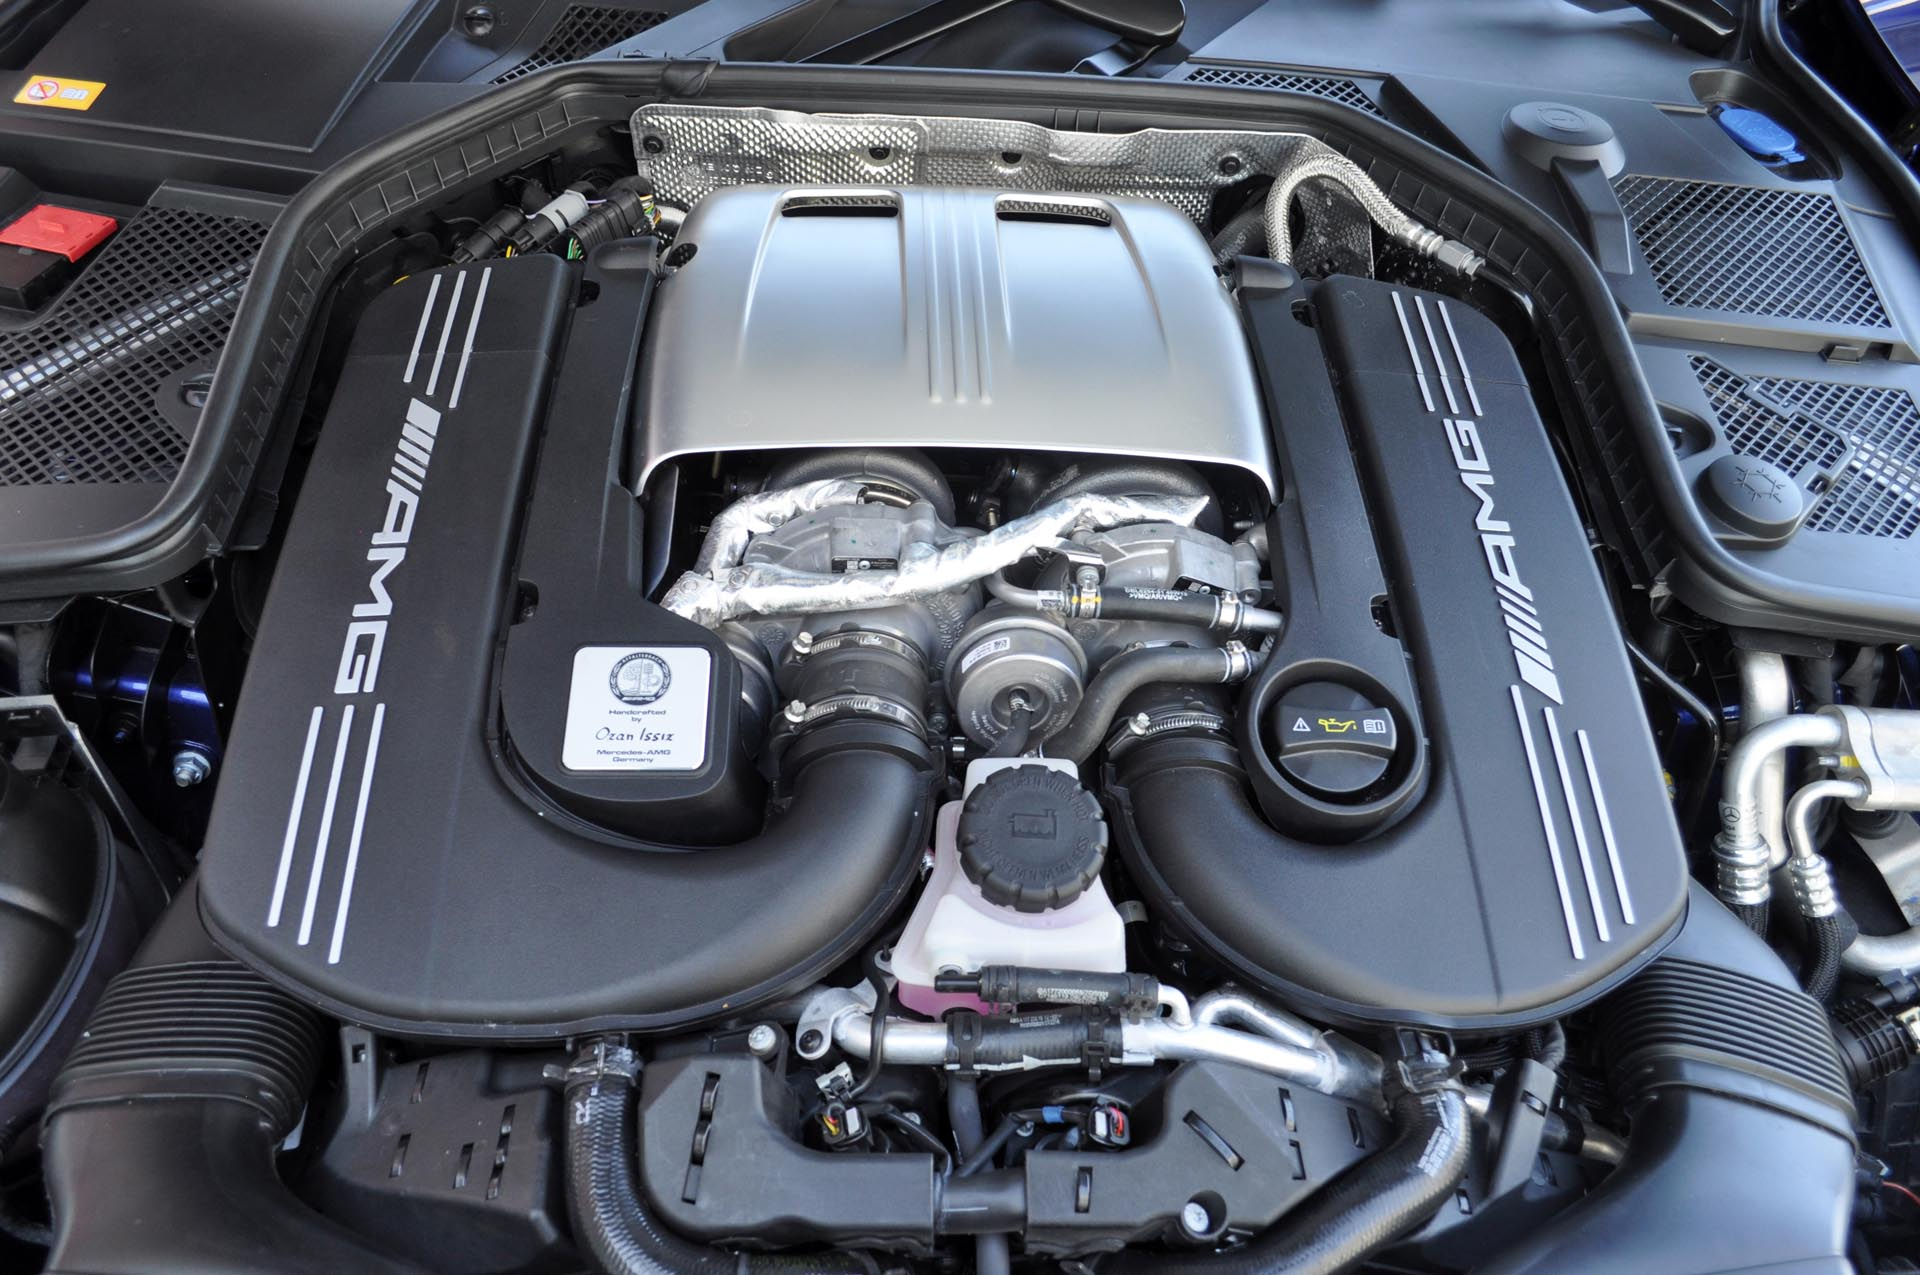 Using the same beastly 4.0L V8 found under the hood of the much pricier Mercedes-AMG GT two-seat sports car, the C 63 S pumps out 503 hp – the exact same rating as that all-new AMG GT, though the C 63 S clocks in at an even more monstrous 516 lb-ft of torque. The regular C 63 uses the same engine but slightly detuned, but still demolishes everything in its class with 469 hp and 479 lb-ft of torque.